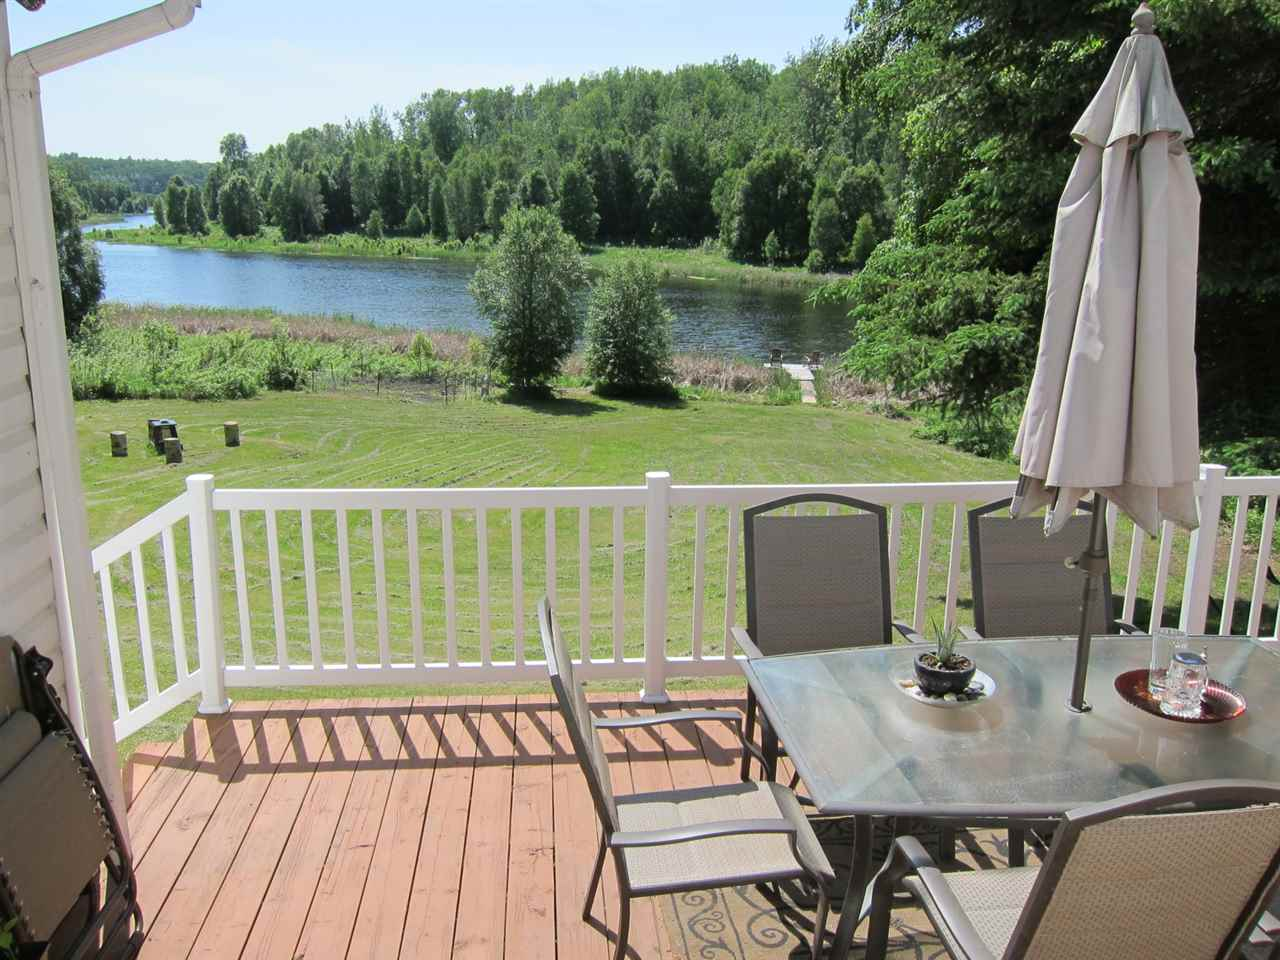 Photo 8: 1401 TWP RD 540 Road: Rural Parkland County House for sale : MLS® # E4068749